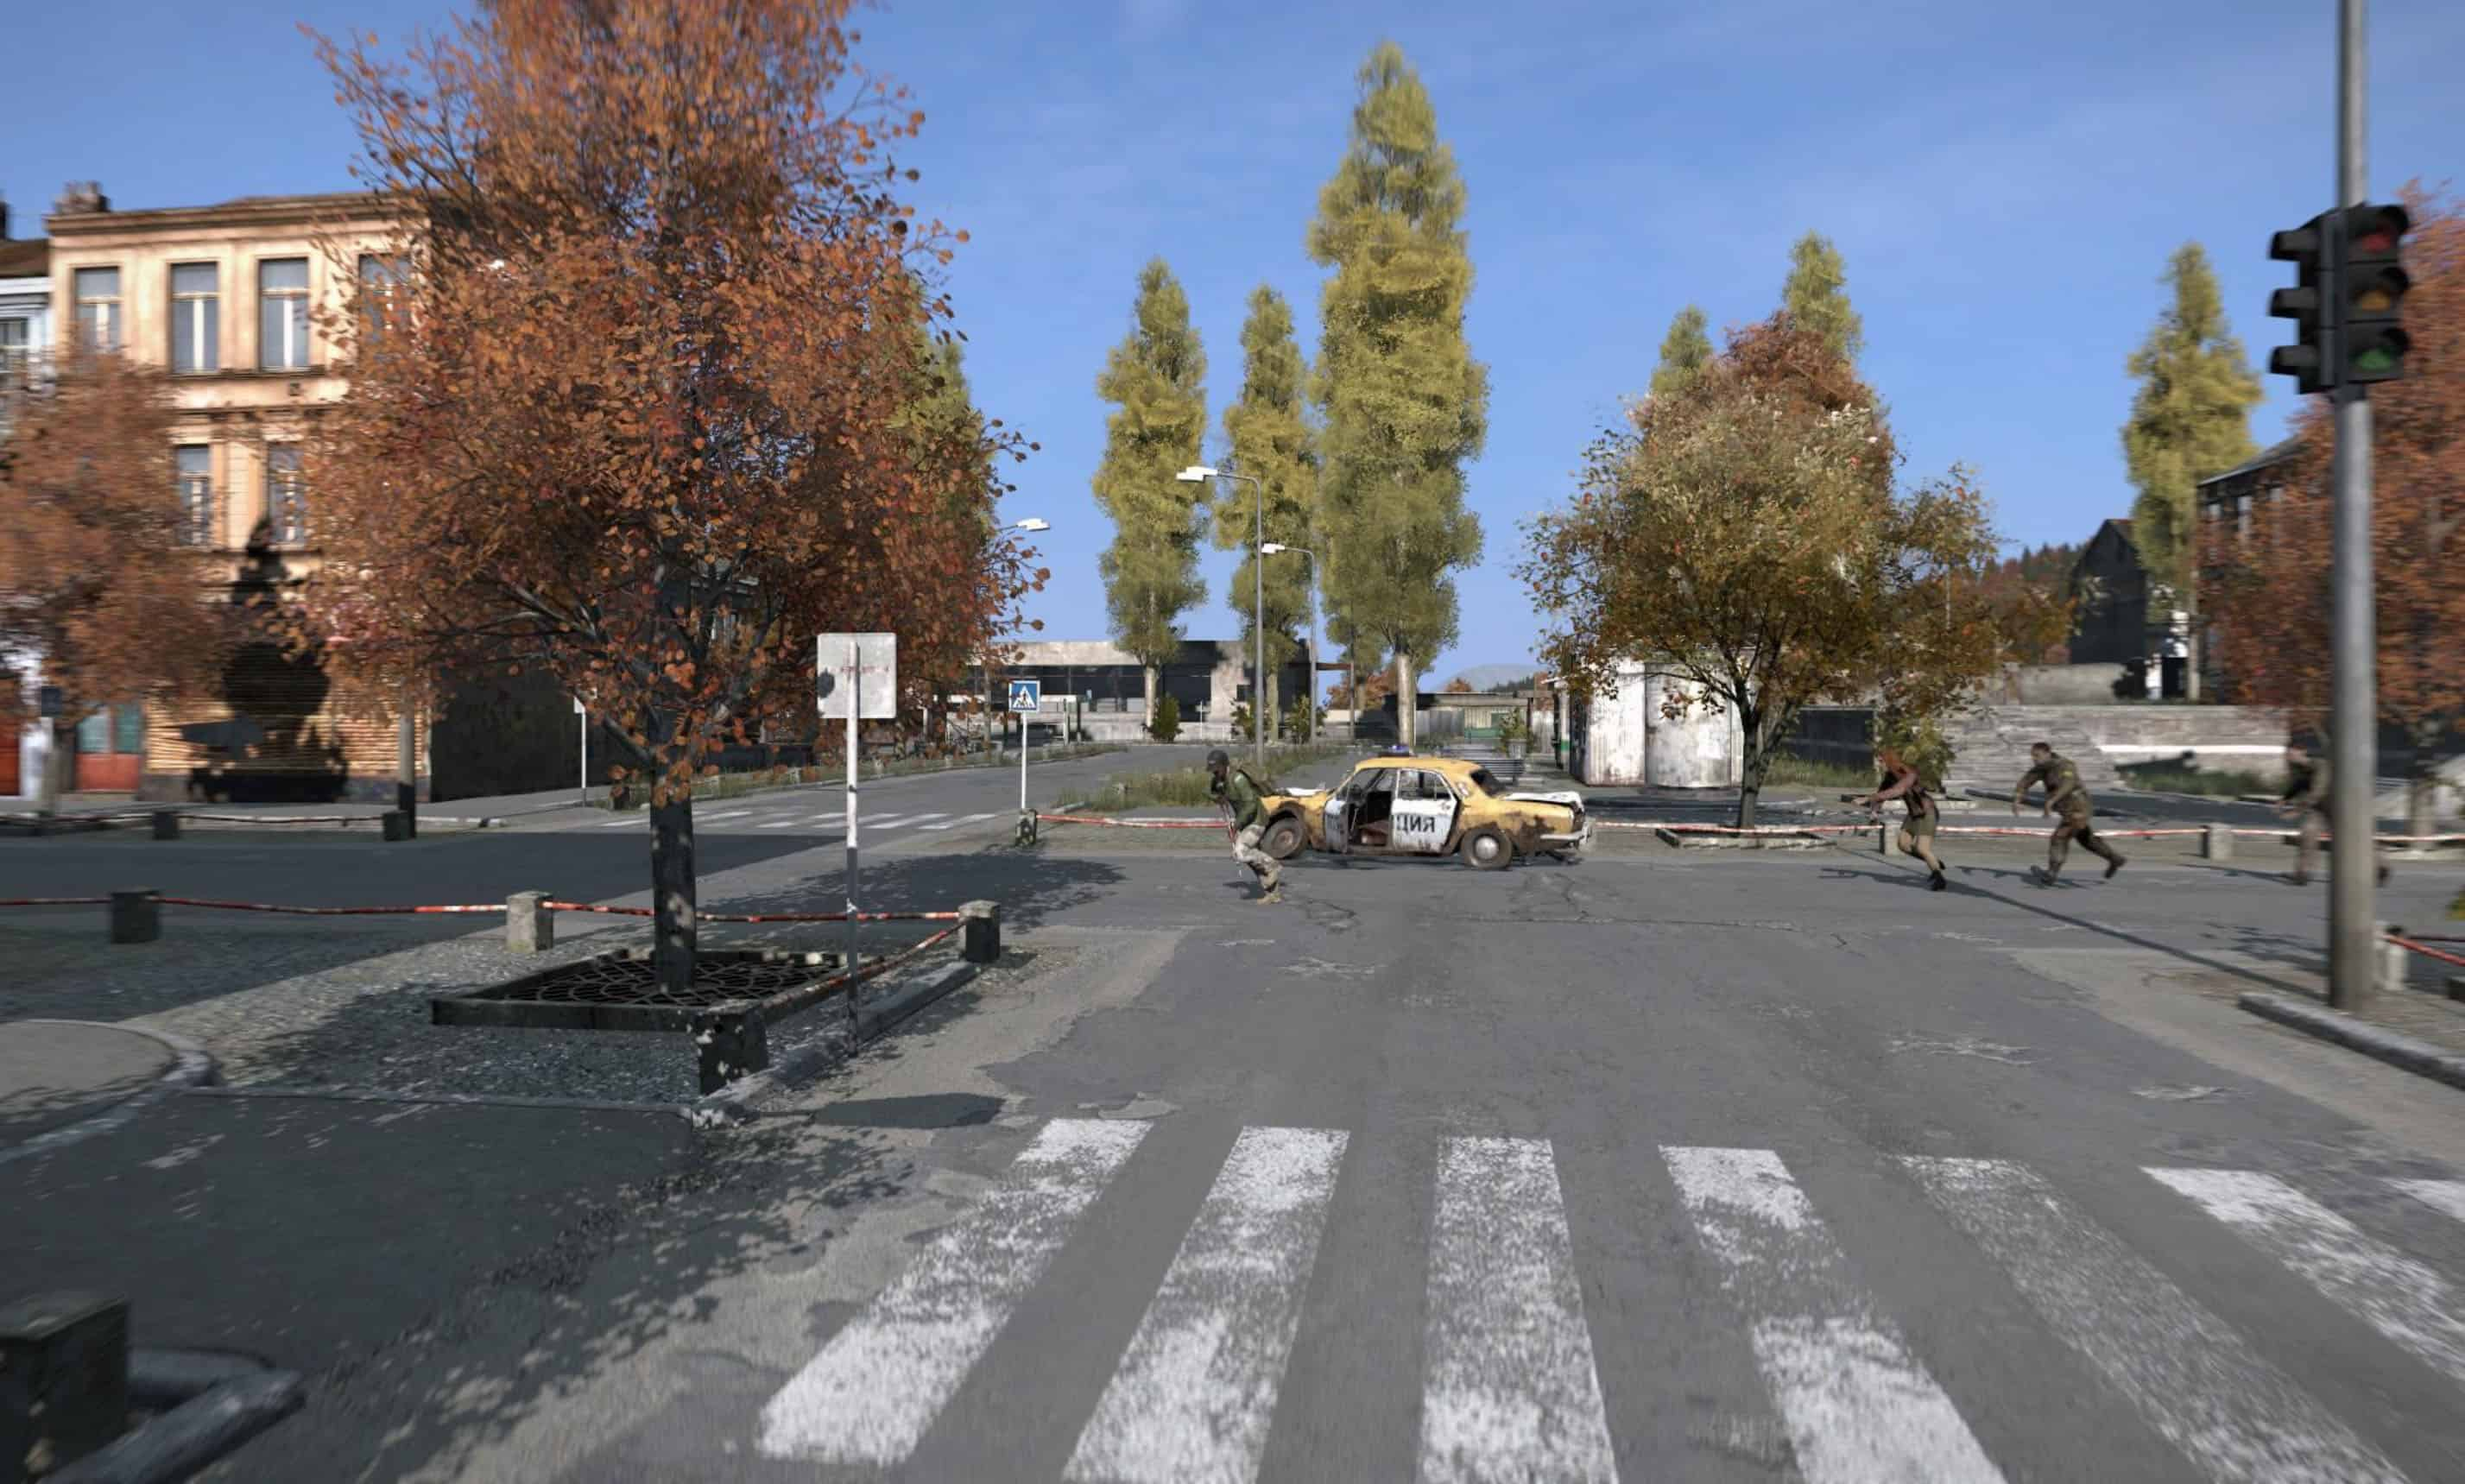 Dayz standalone dedicated server setup